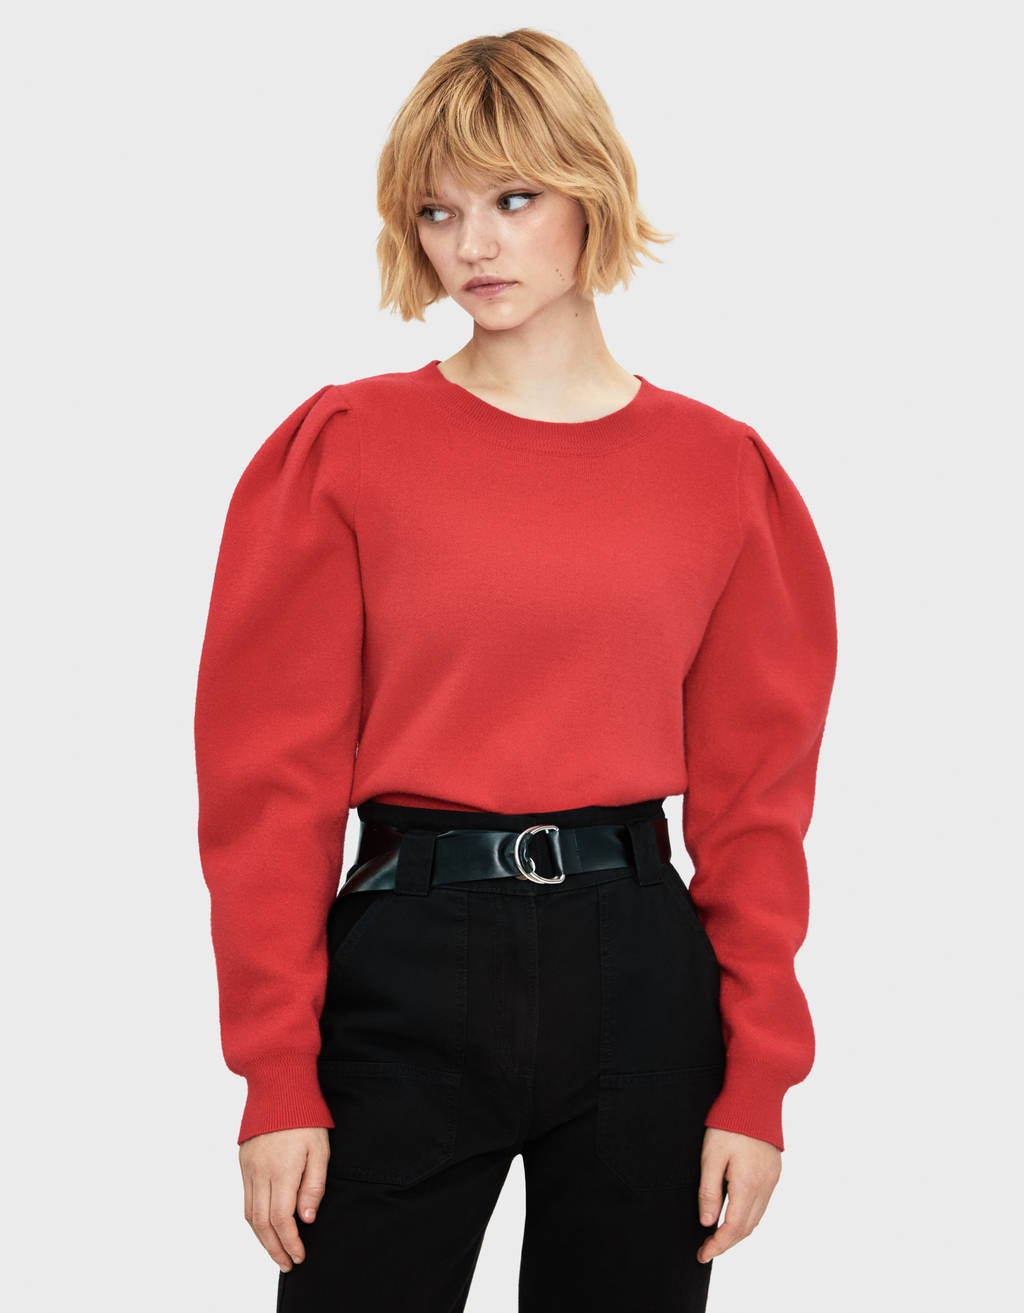 Sweater with puffy sleeves